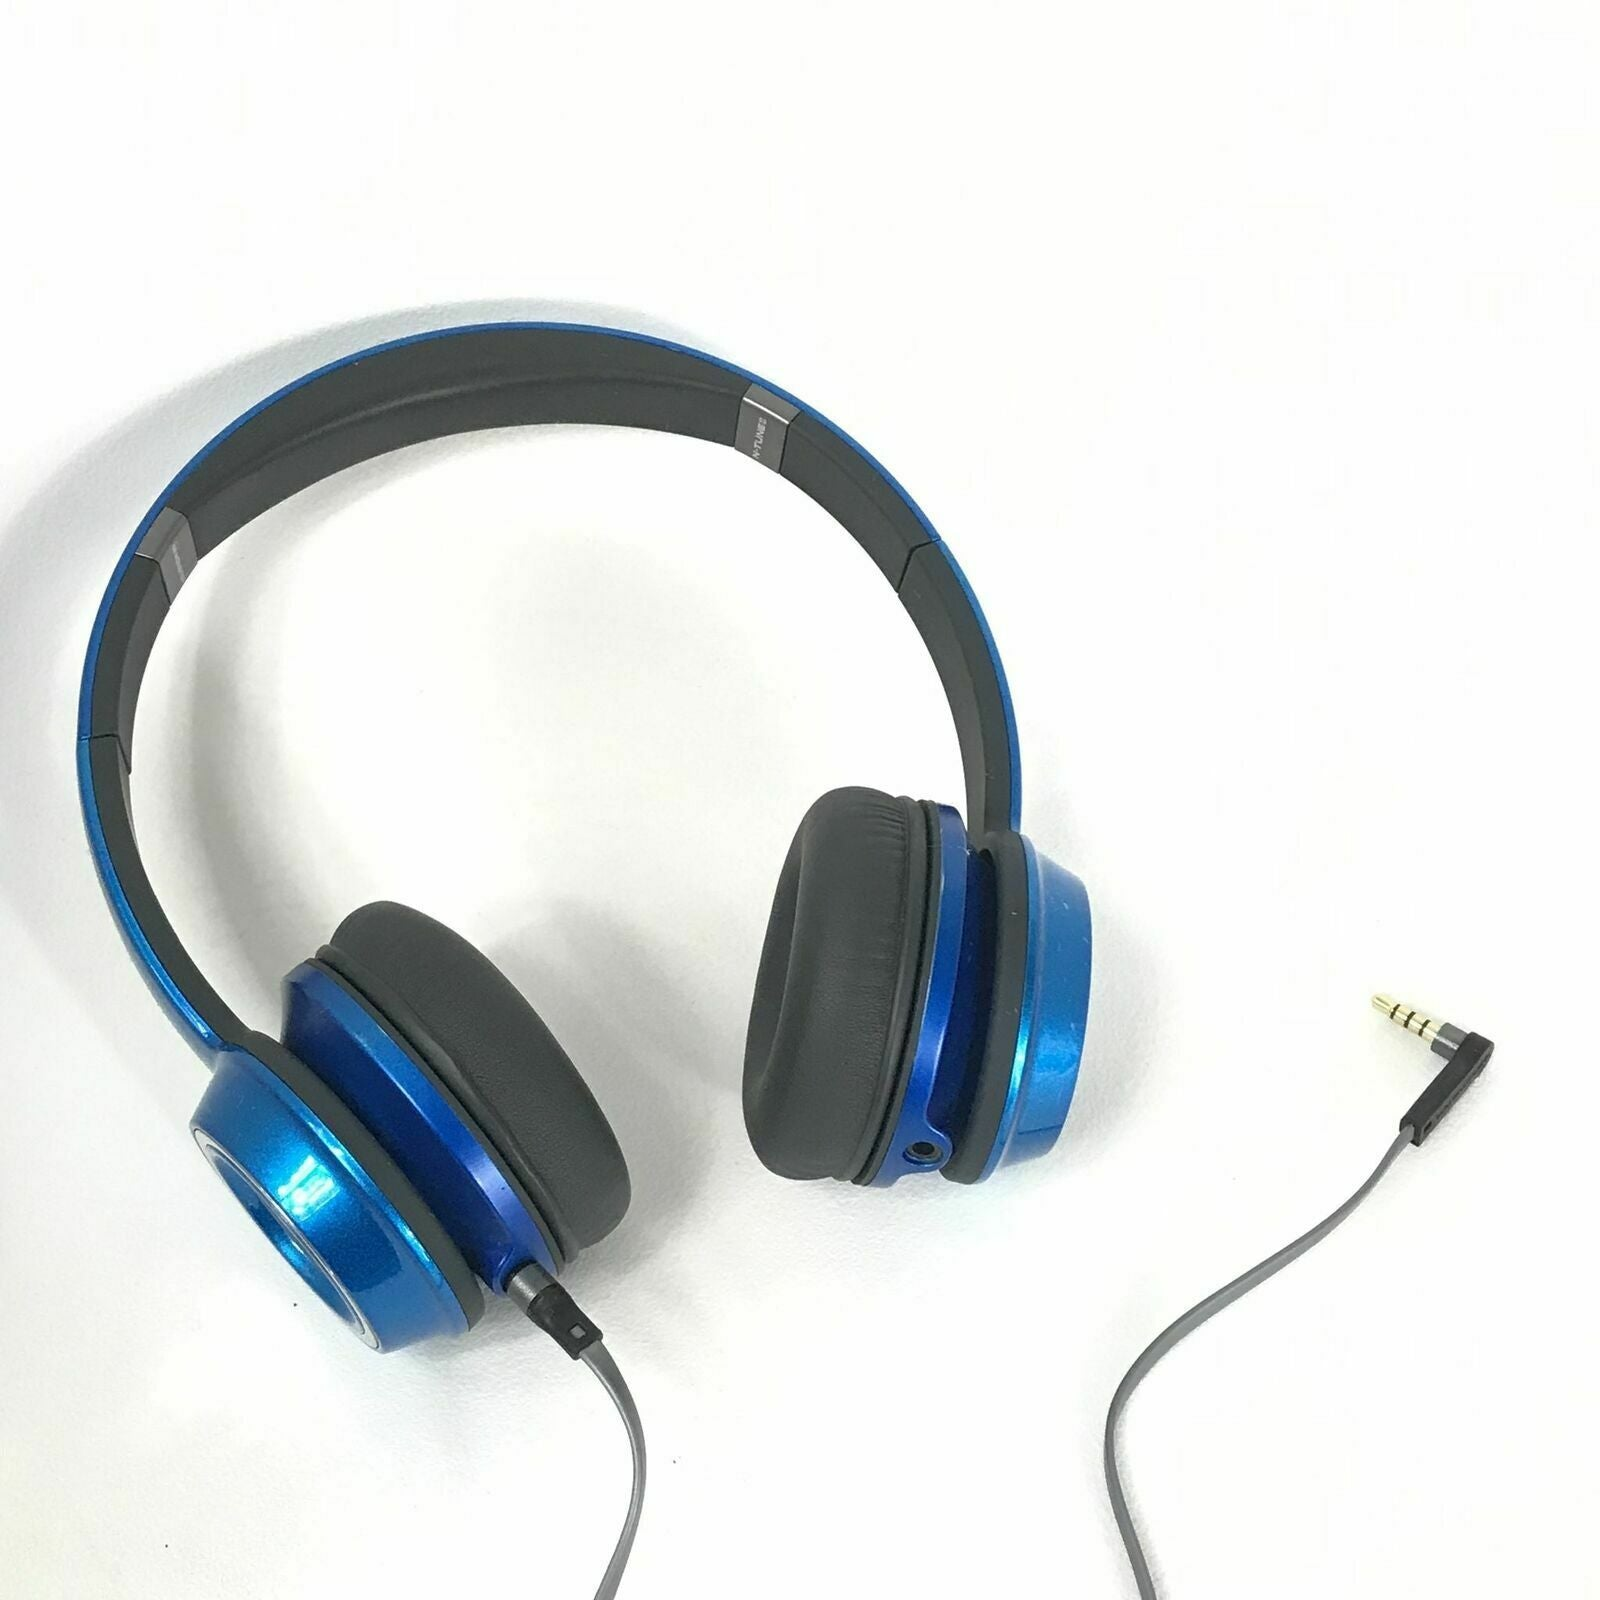 Audifonos Premium Monster N-tune Hd Candy Blueberry